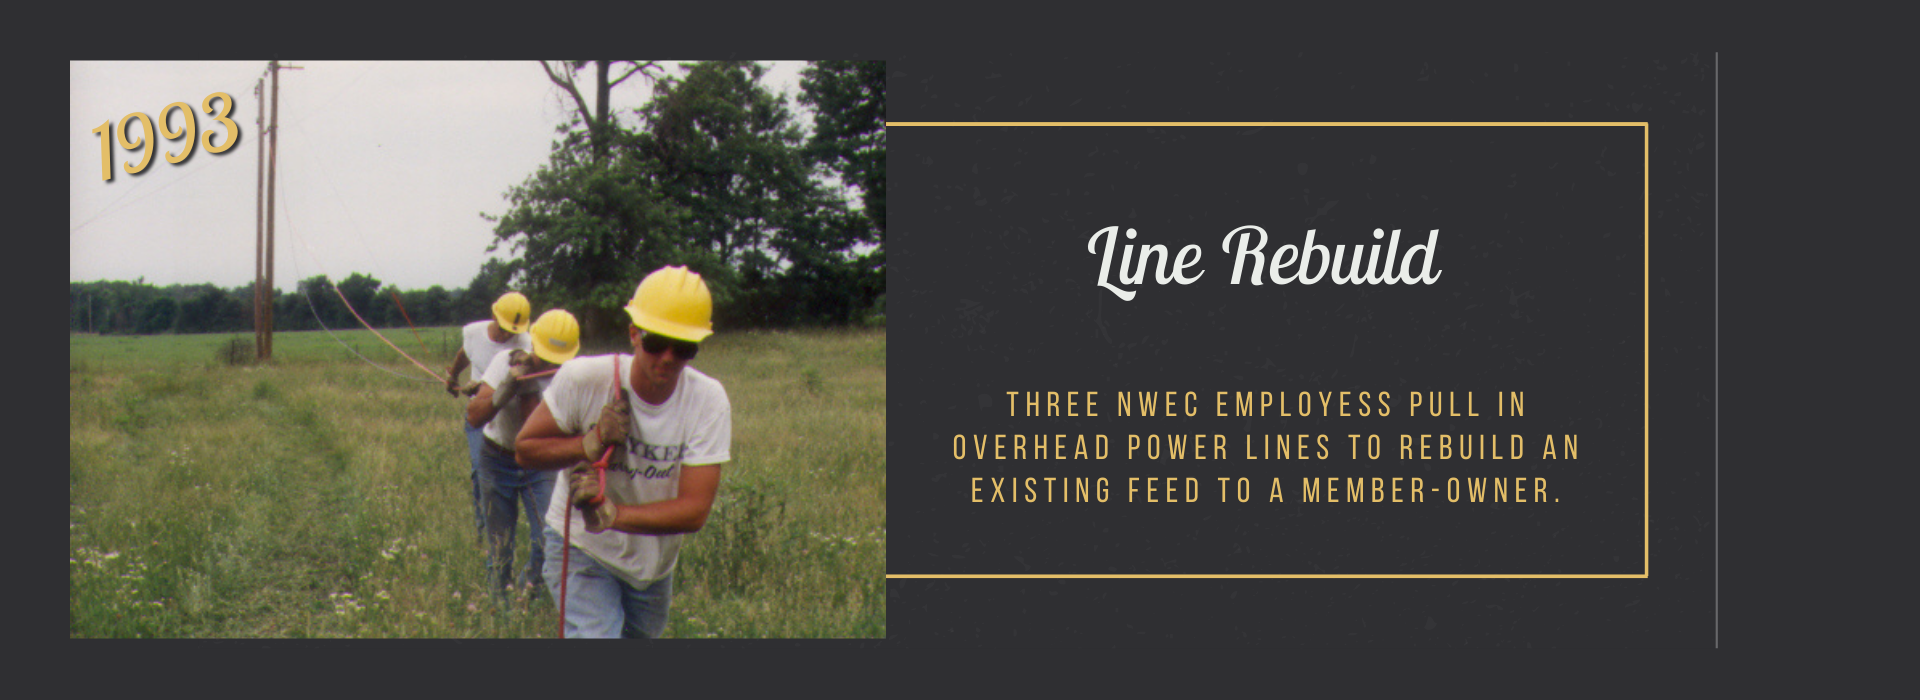 three NWEC employess pull in overhead power lines to rebuild an existing feed to a member-owner.